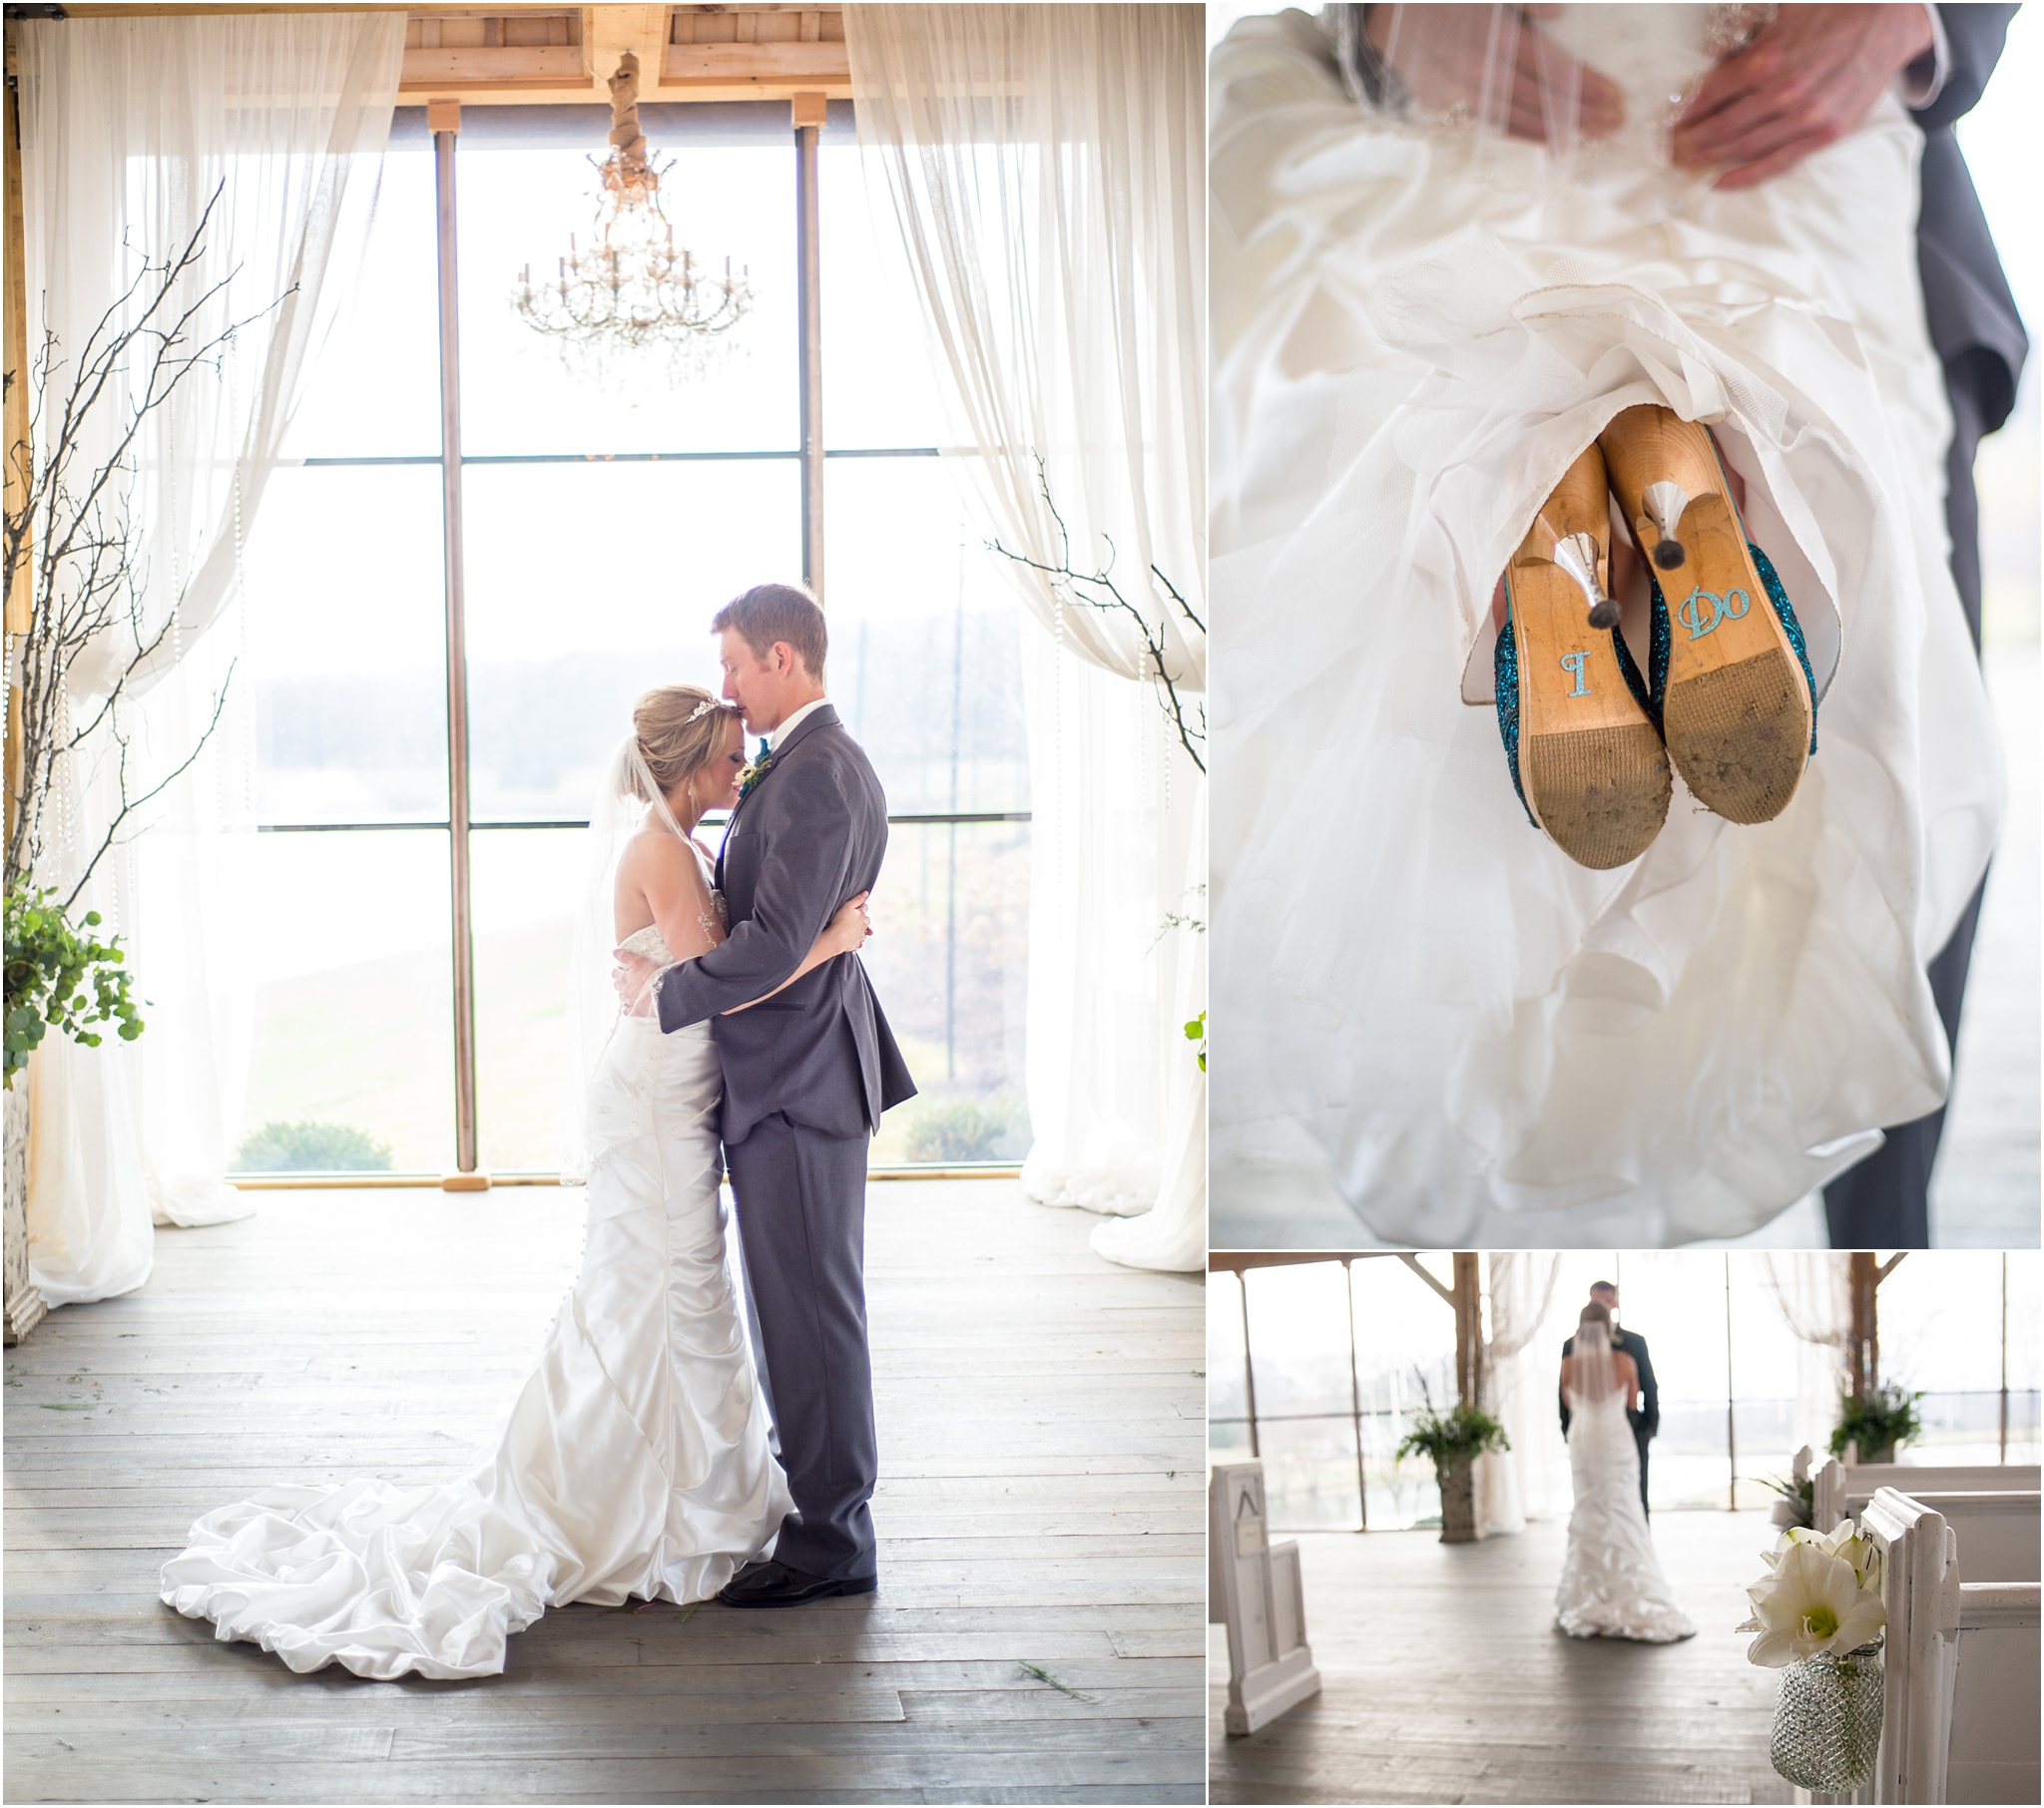 Greg Smit Photography Nashville wedding photographer Mint Springs farm 12